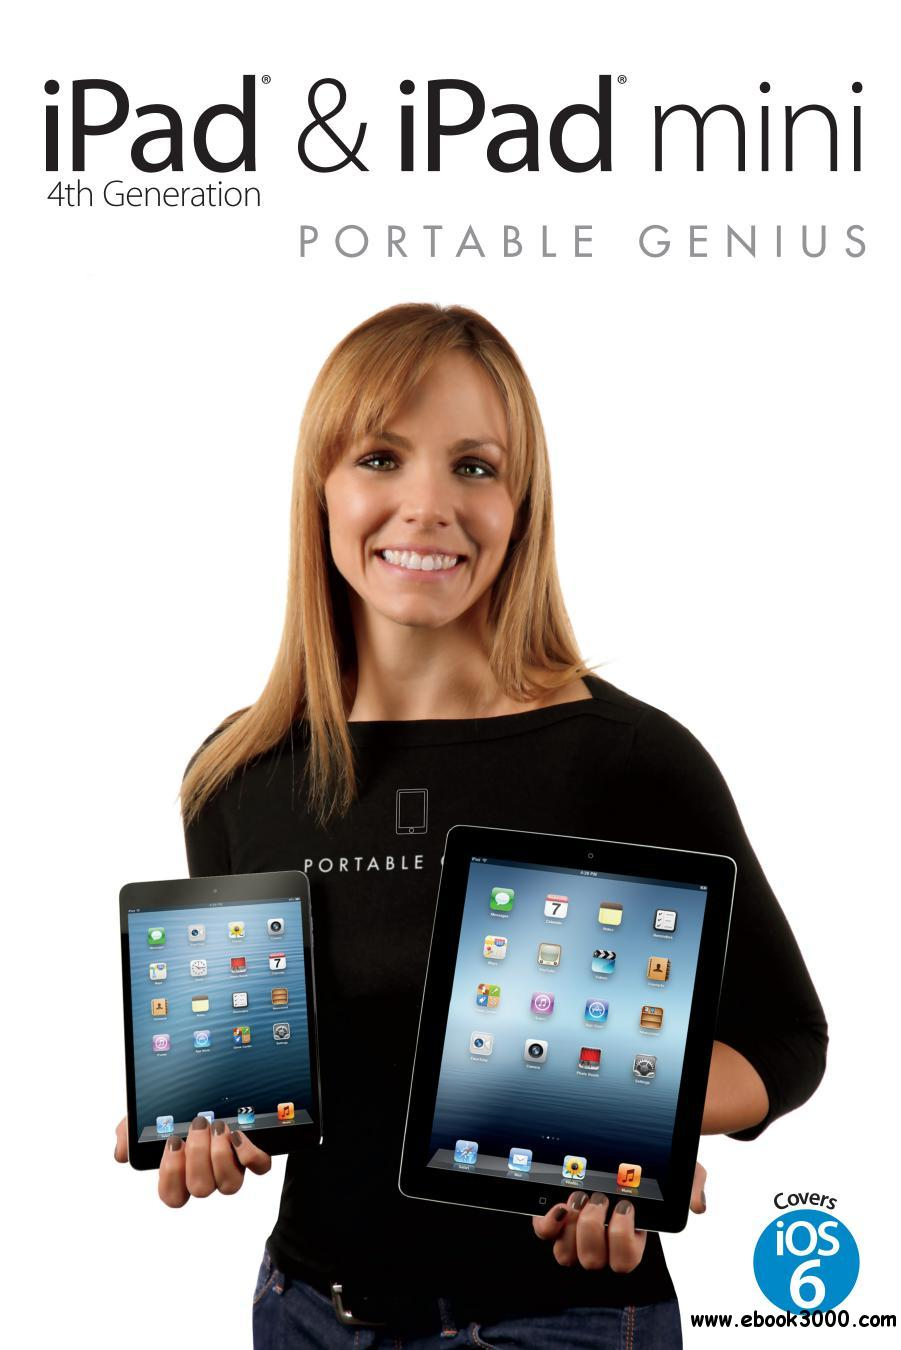 iPad 4th Generation and iPad mini Portable Genius free download